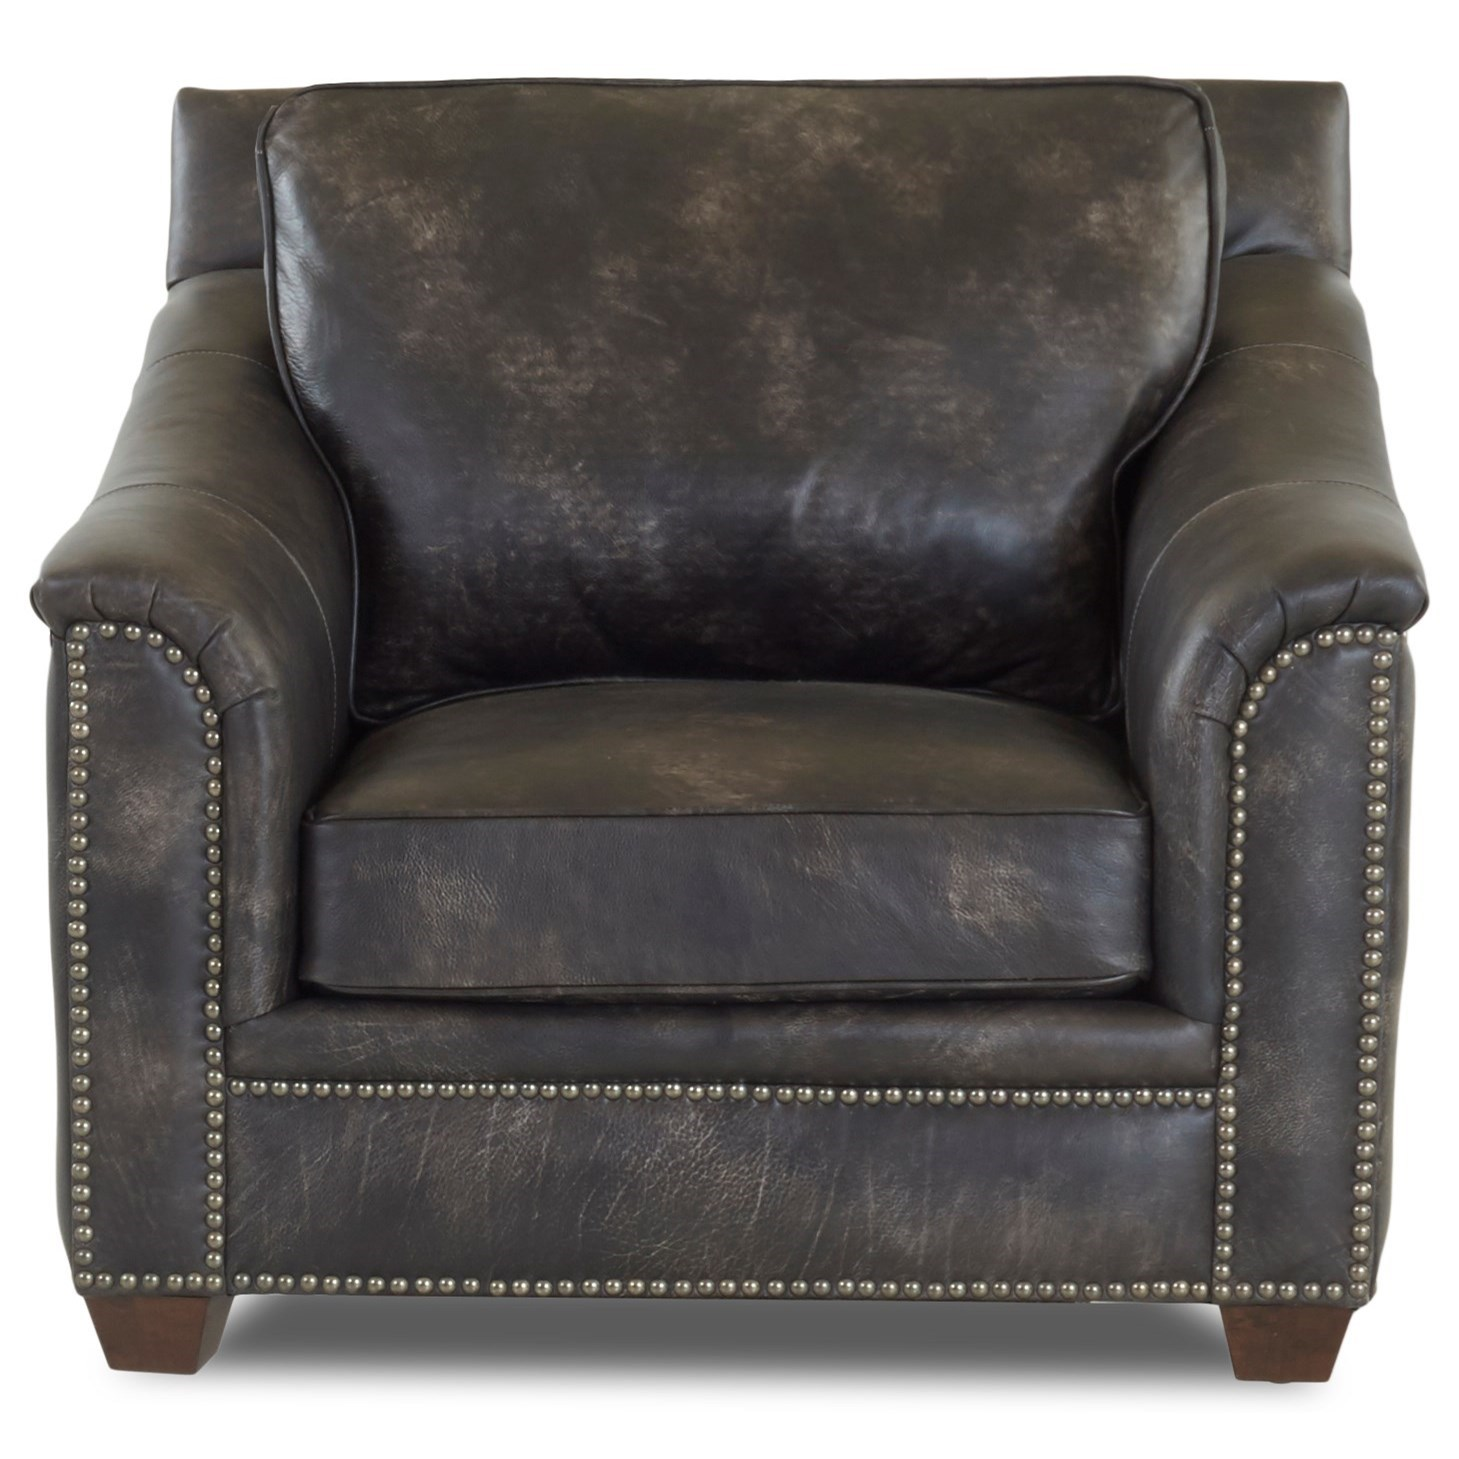 leather chair ottoman set with storage klaussner wilkesboro and